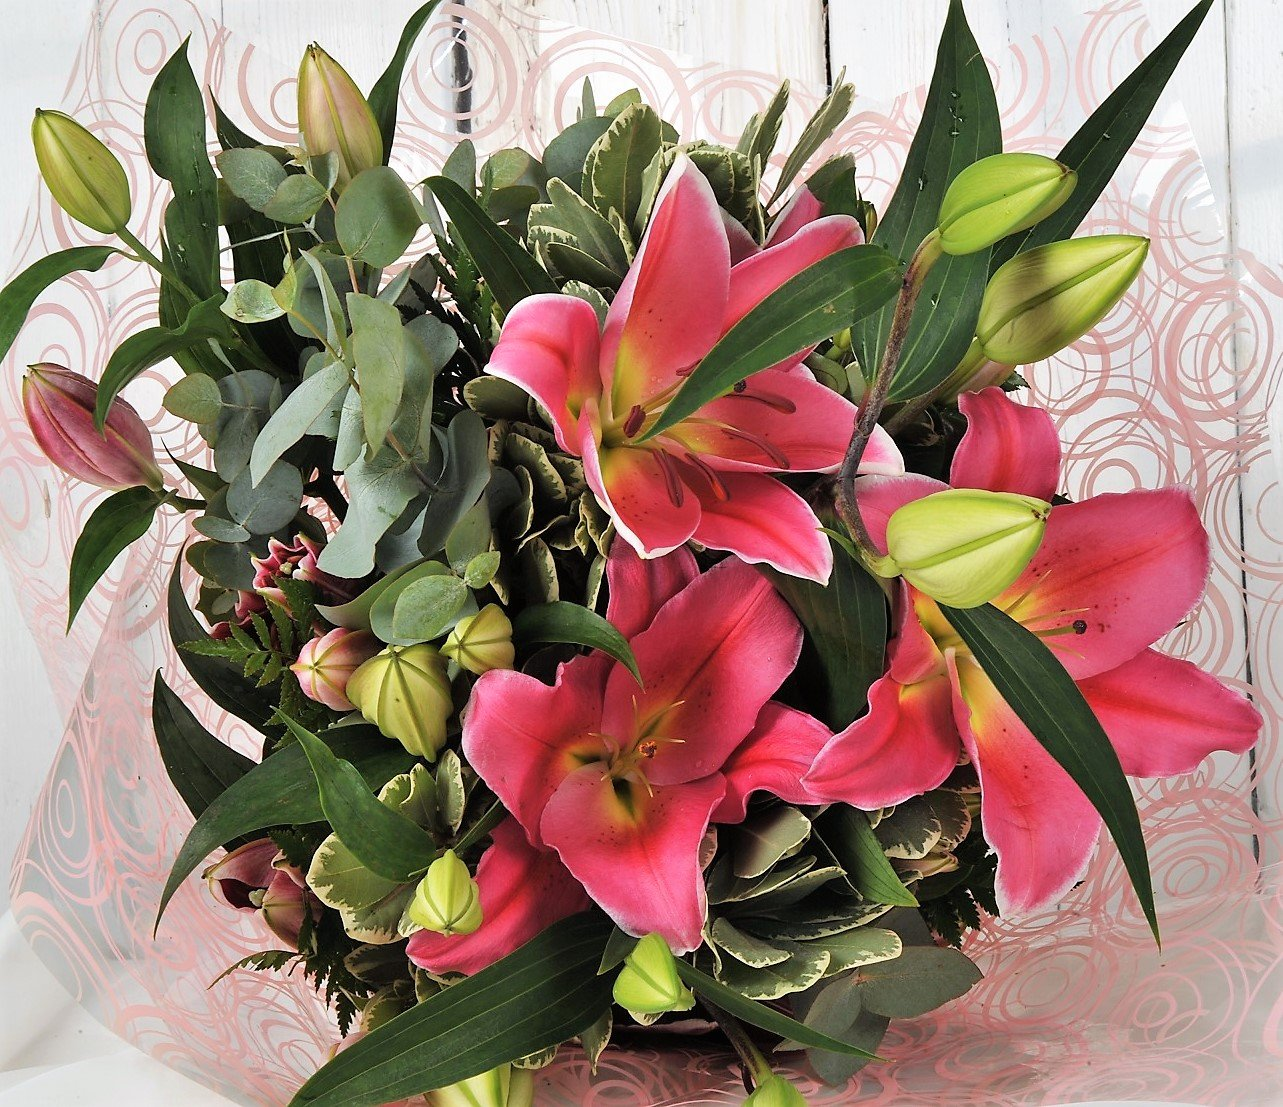 Perfect Pink Oriental Scented Lilies Delivered With Handwritten Card Fresh Flowers FREE UK Next Day Delivery 7 Days A Week Send Gift Wrapped For Happy